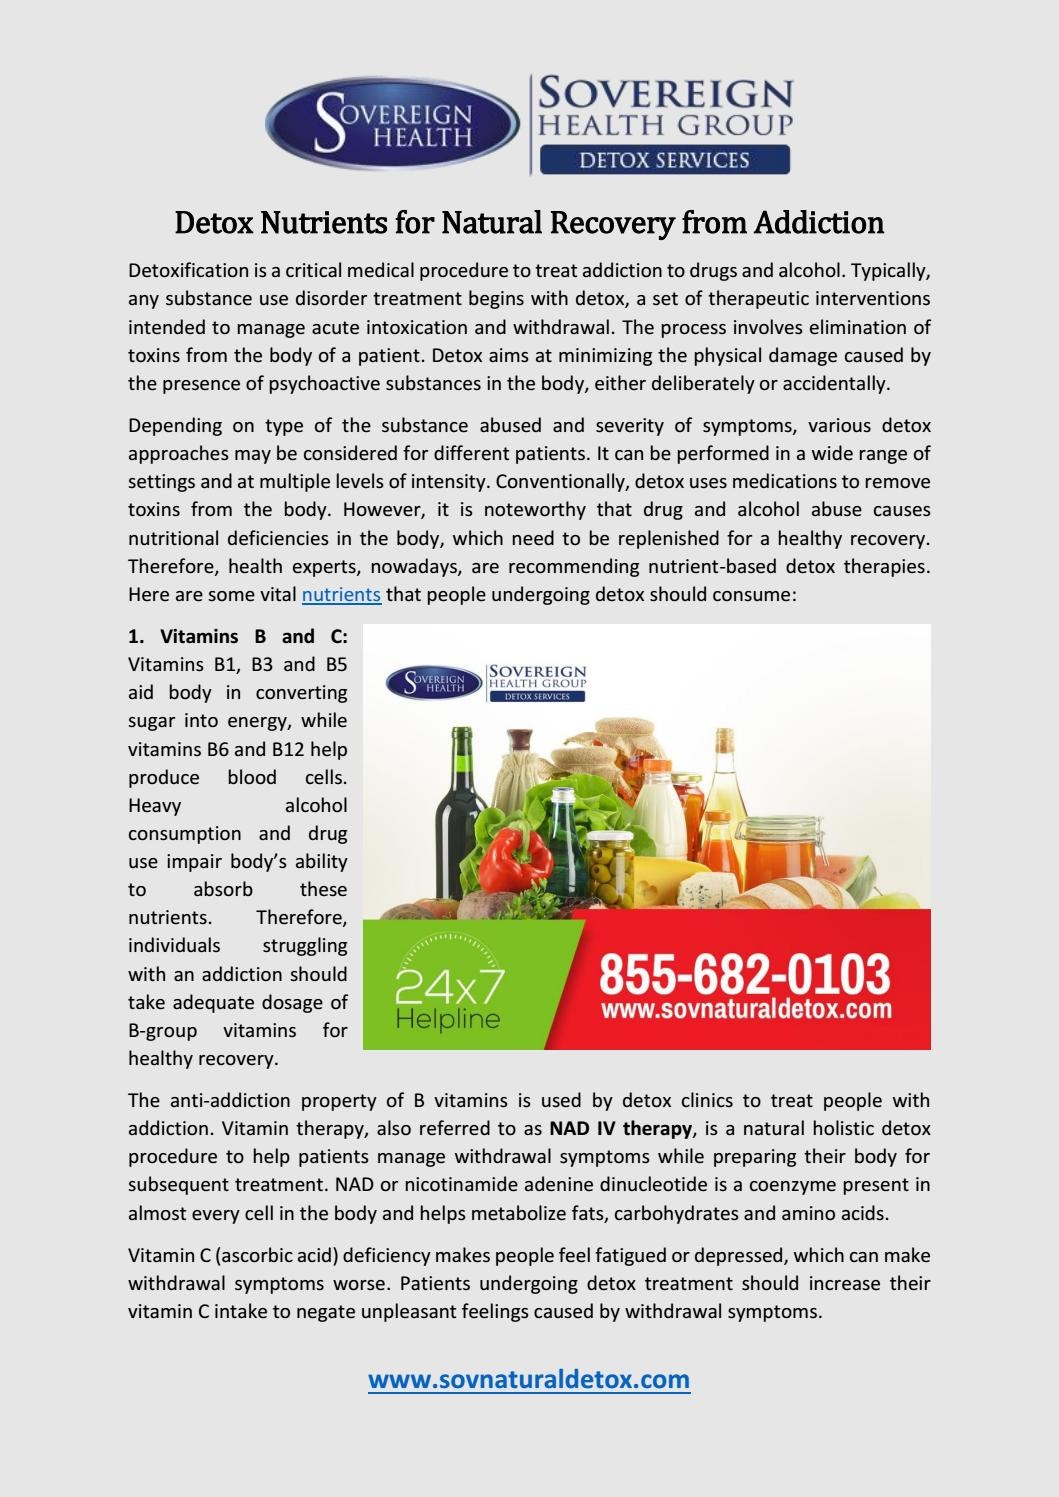 Detox Nutrients for Natural Recovery from Addiction by Sean